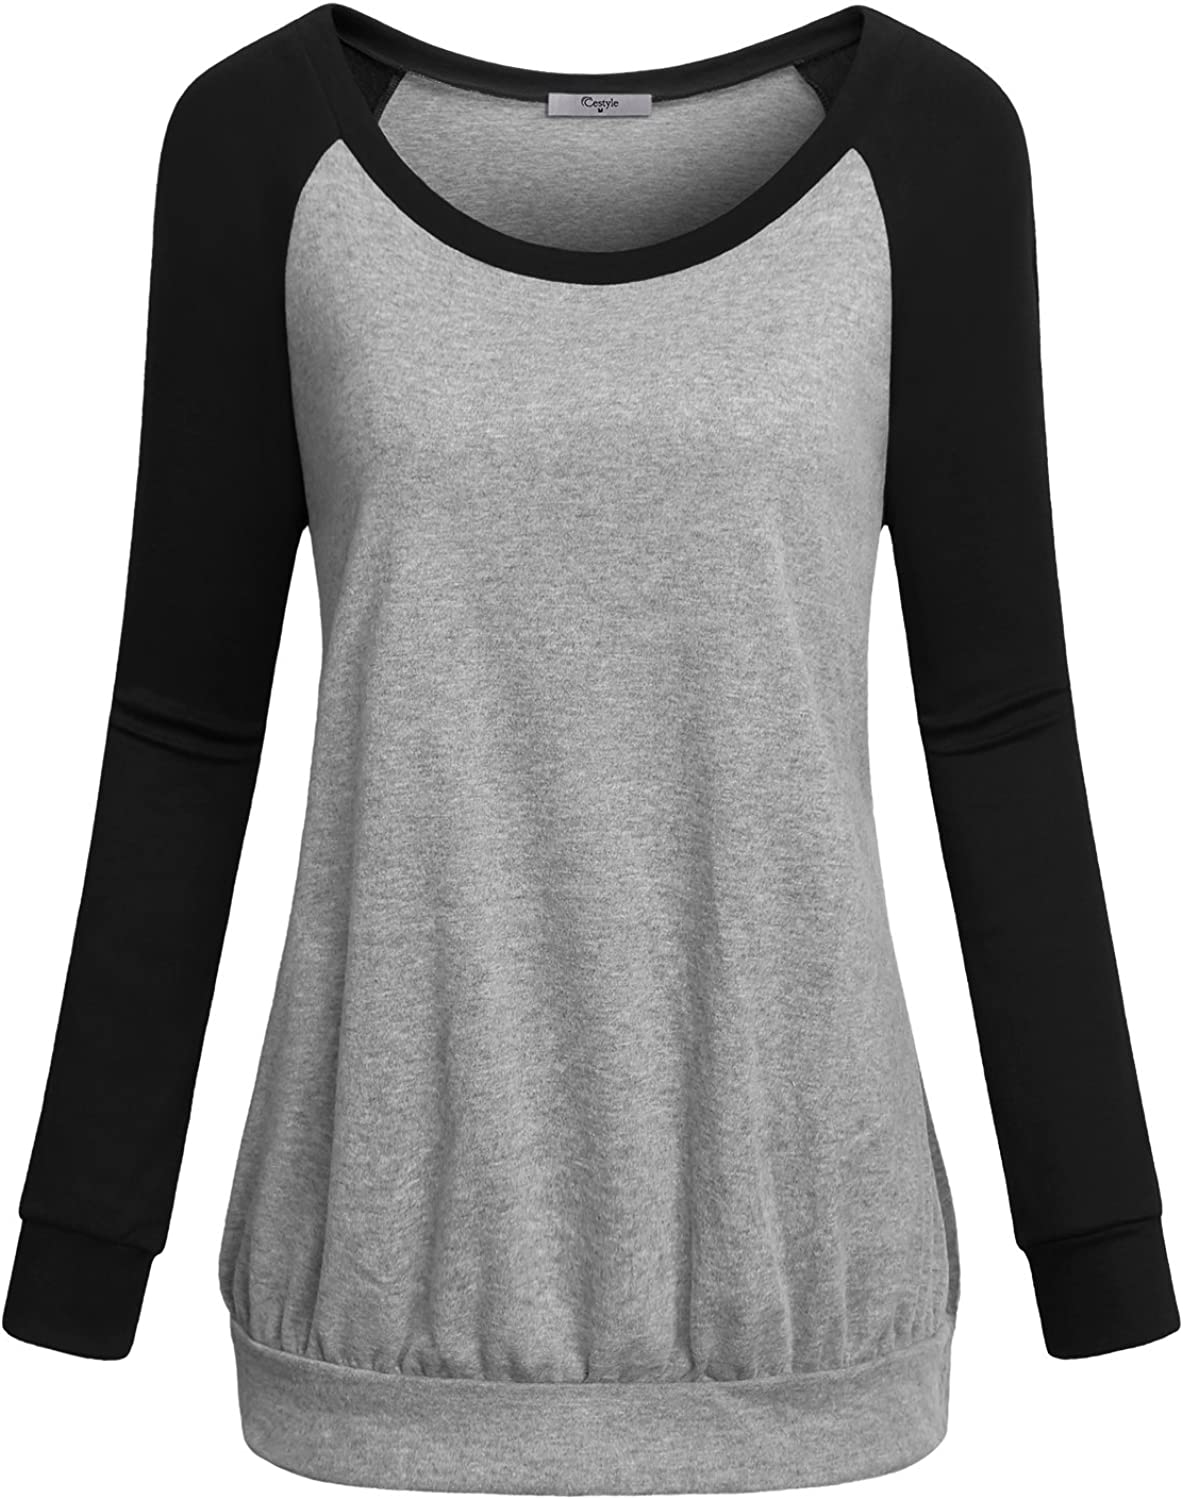 Cestyle Womens Crew Neck Long Raglan Sleeve Casual Lightweight Pullover Sweatshirt